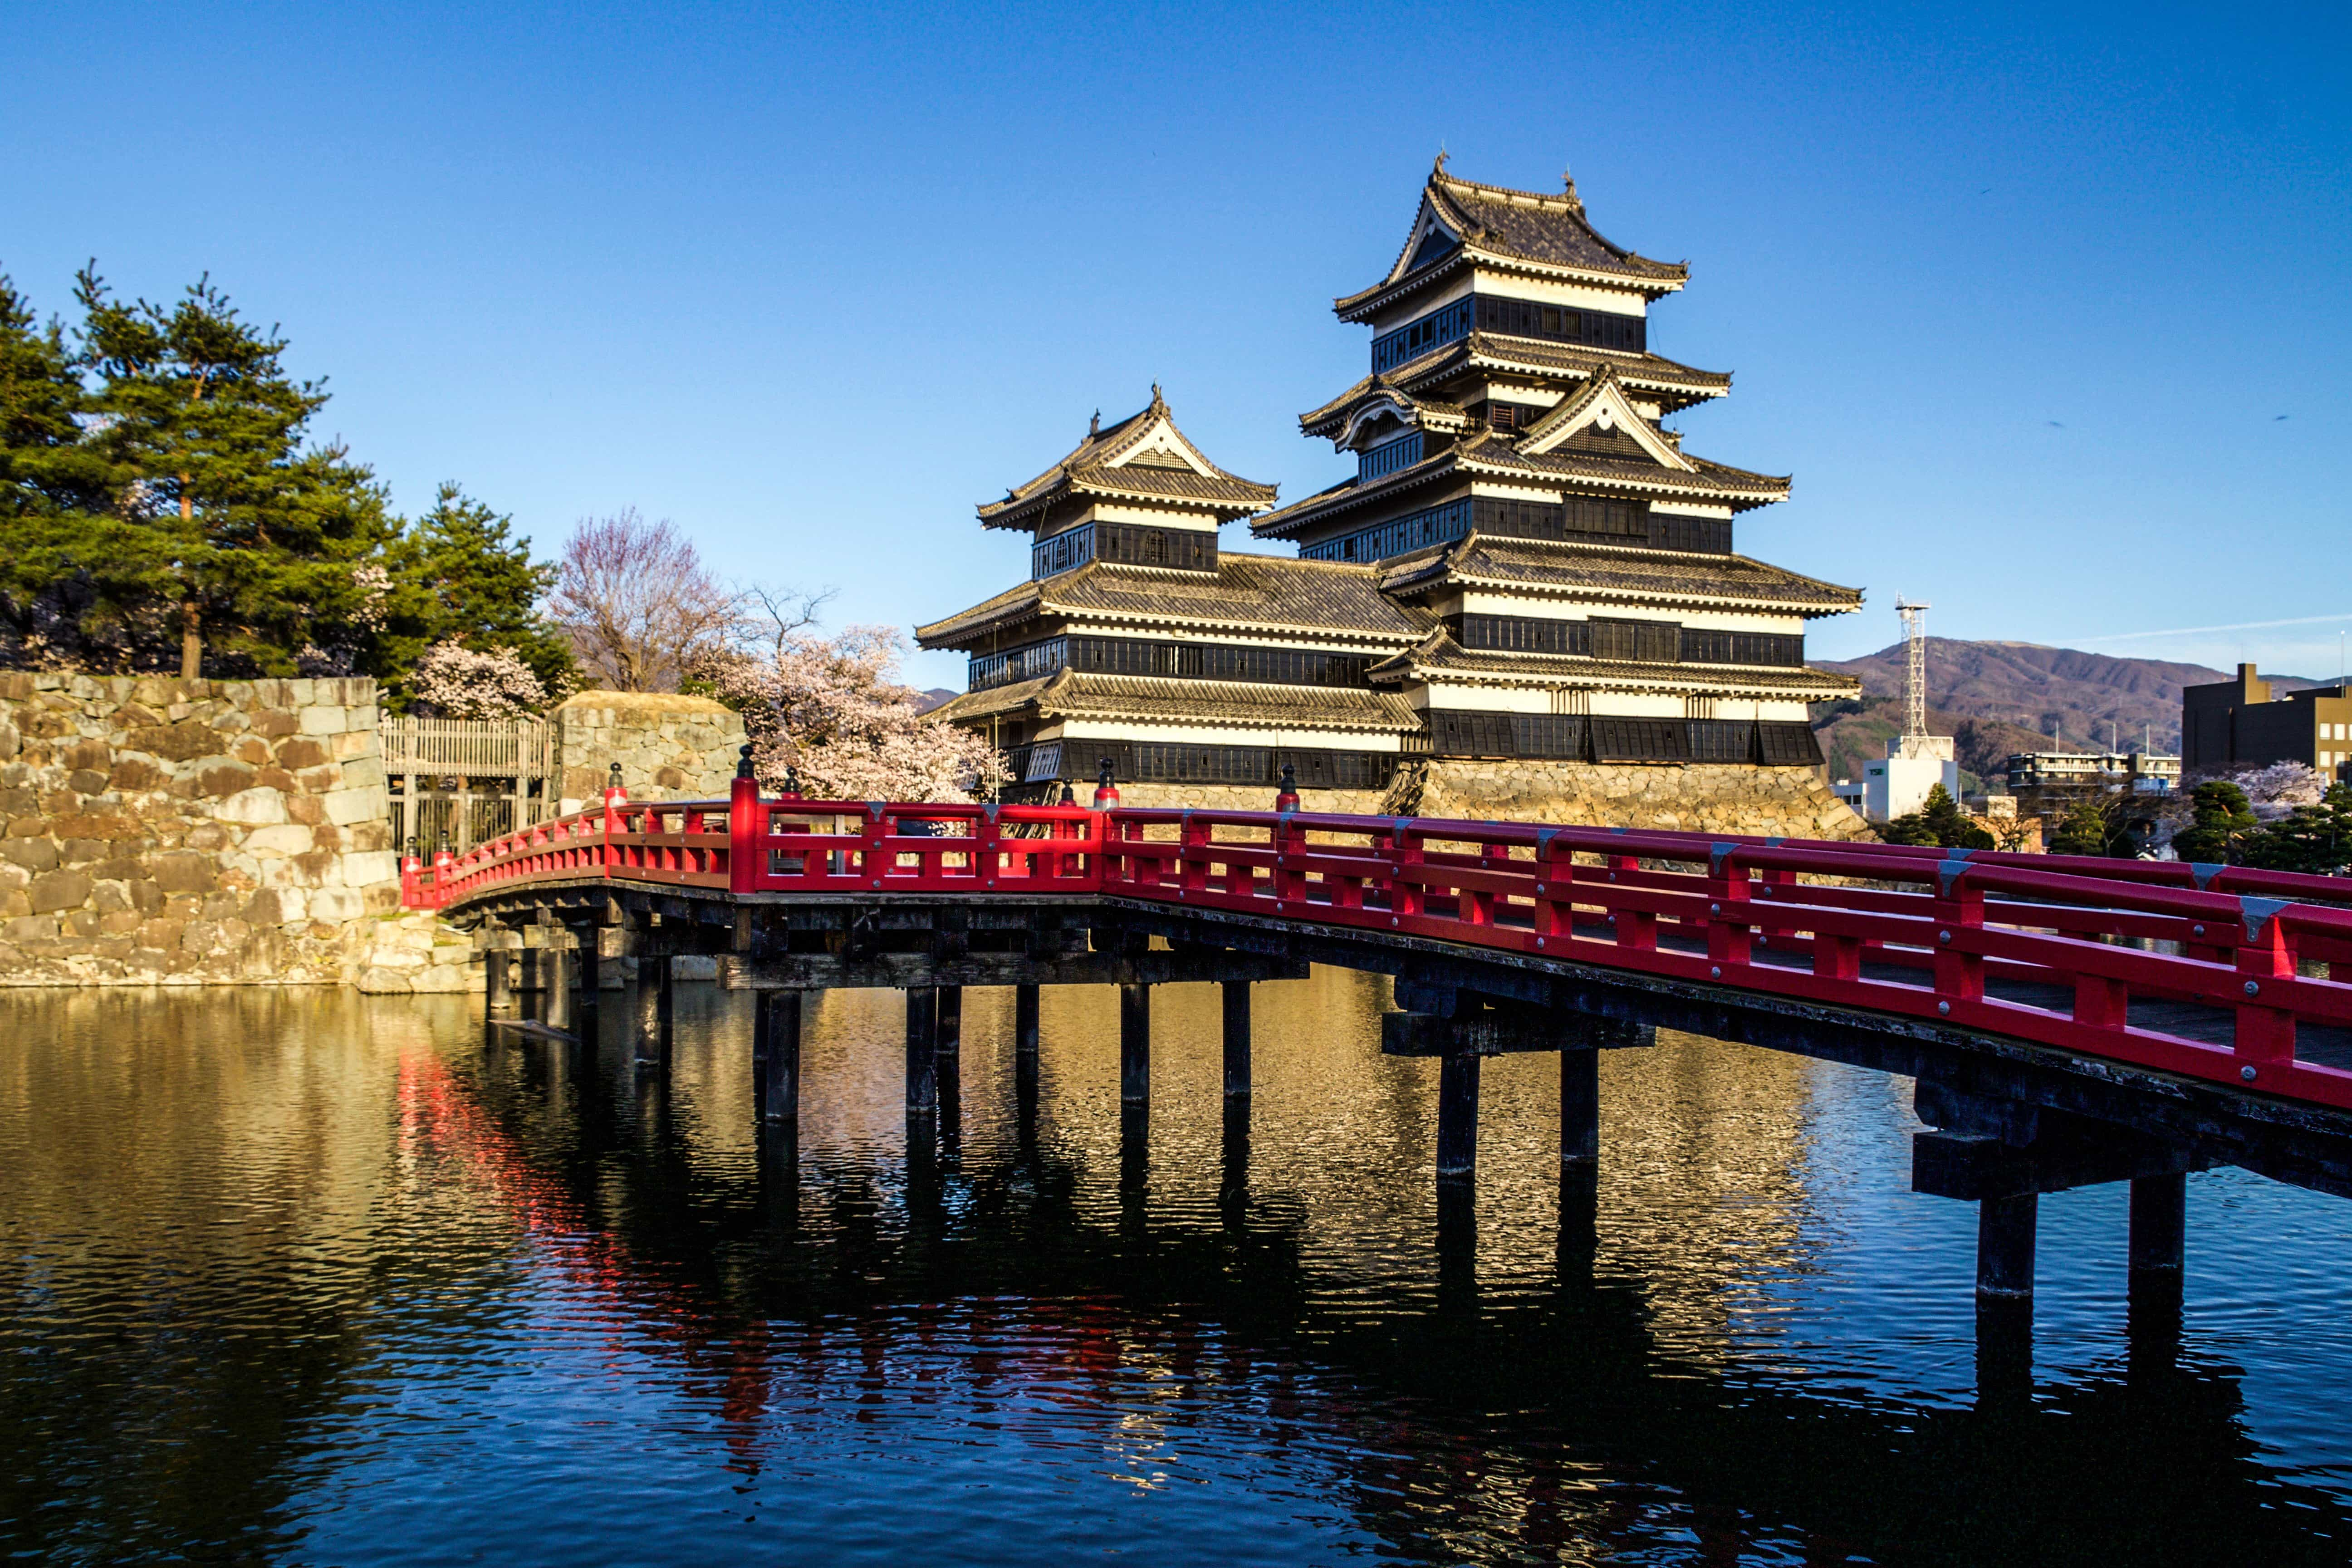 Matsumoto Castle: The Best Place To See Cherry Blossoms In Japan